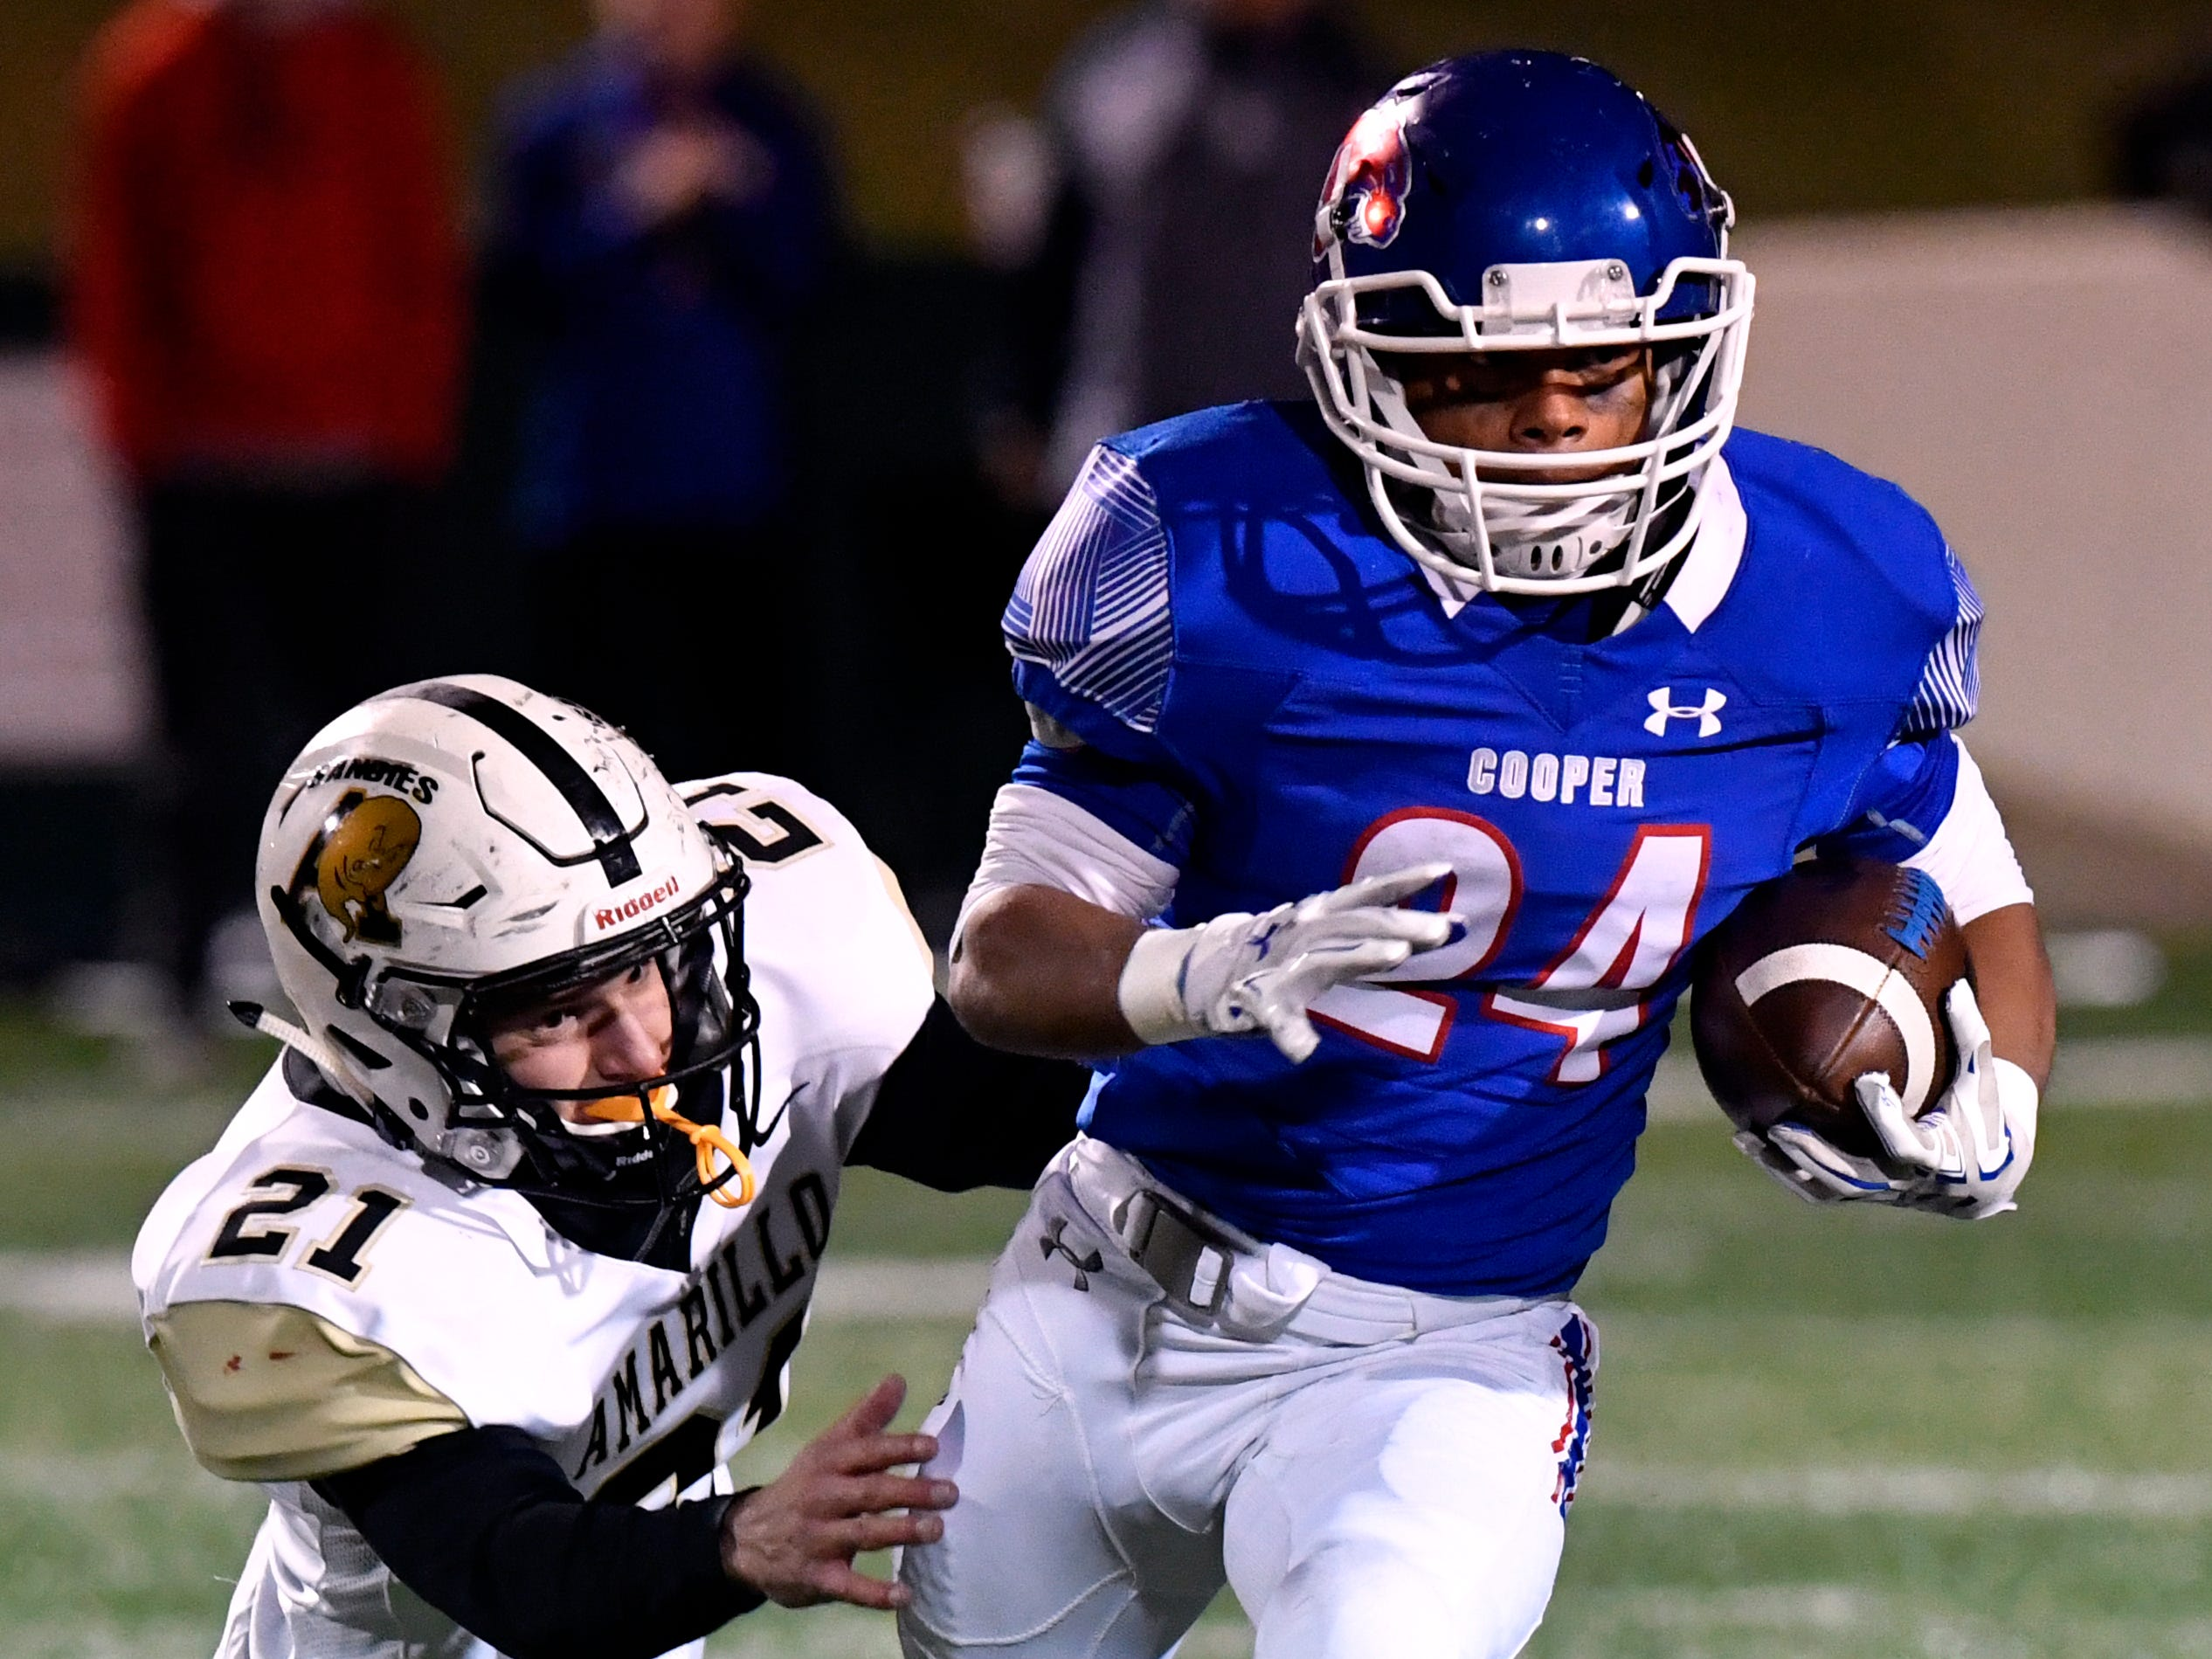 Cooper High running back Jessus Menjivar outruns Sandies linebacker Nelson Sutterfield during Friday's game Nov. 9, 2018. Final score was 58-27, Amarillo.